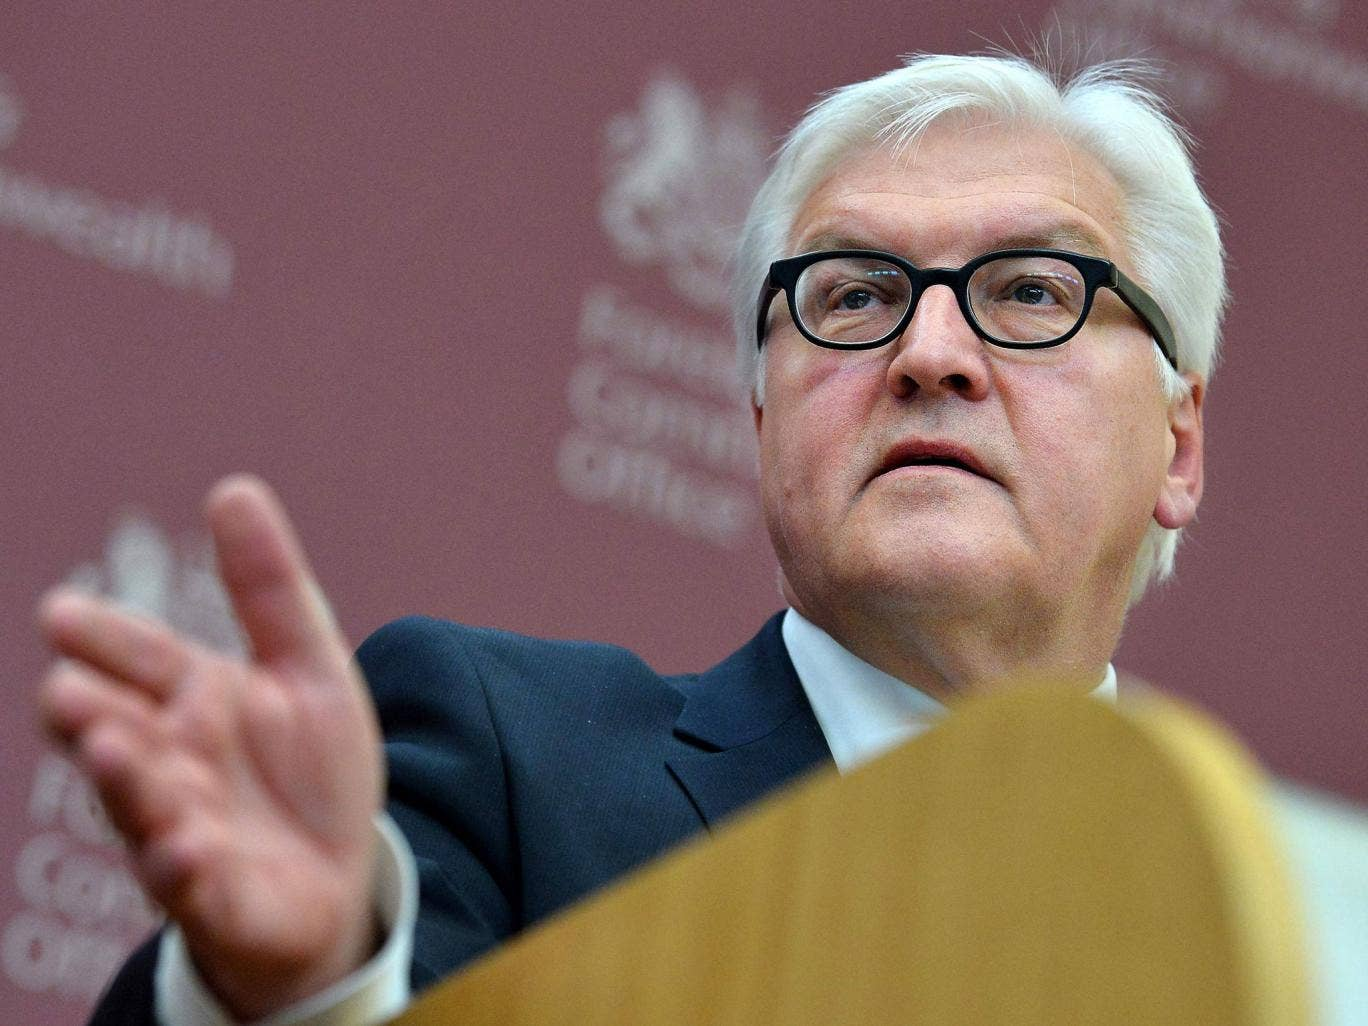 Germany's Foreign Minister Frank-Walter Steinmeier speaks during a news conference with Britain's Foreign Secretary William Hague in the Foreign and Commonwealth Office February 3, 2014